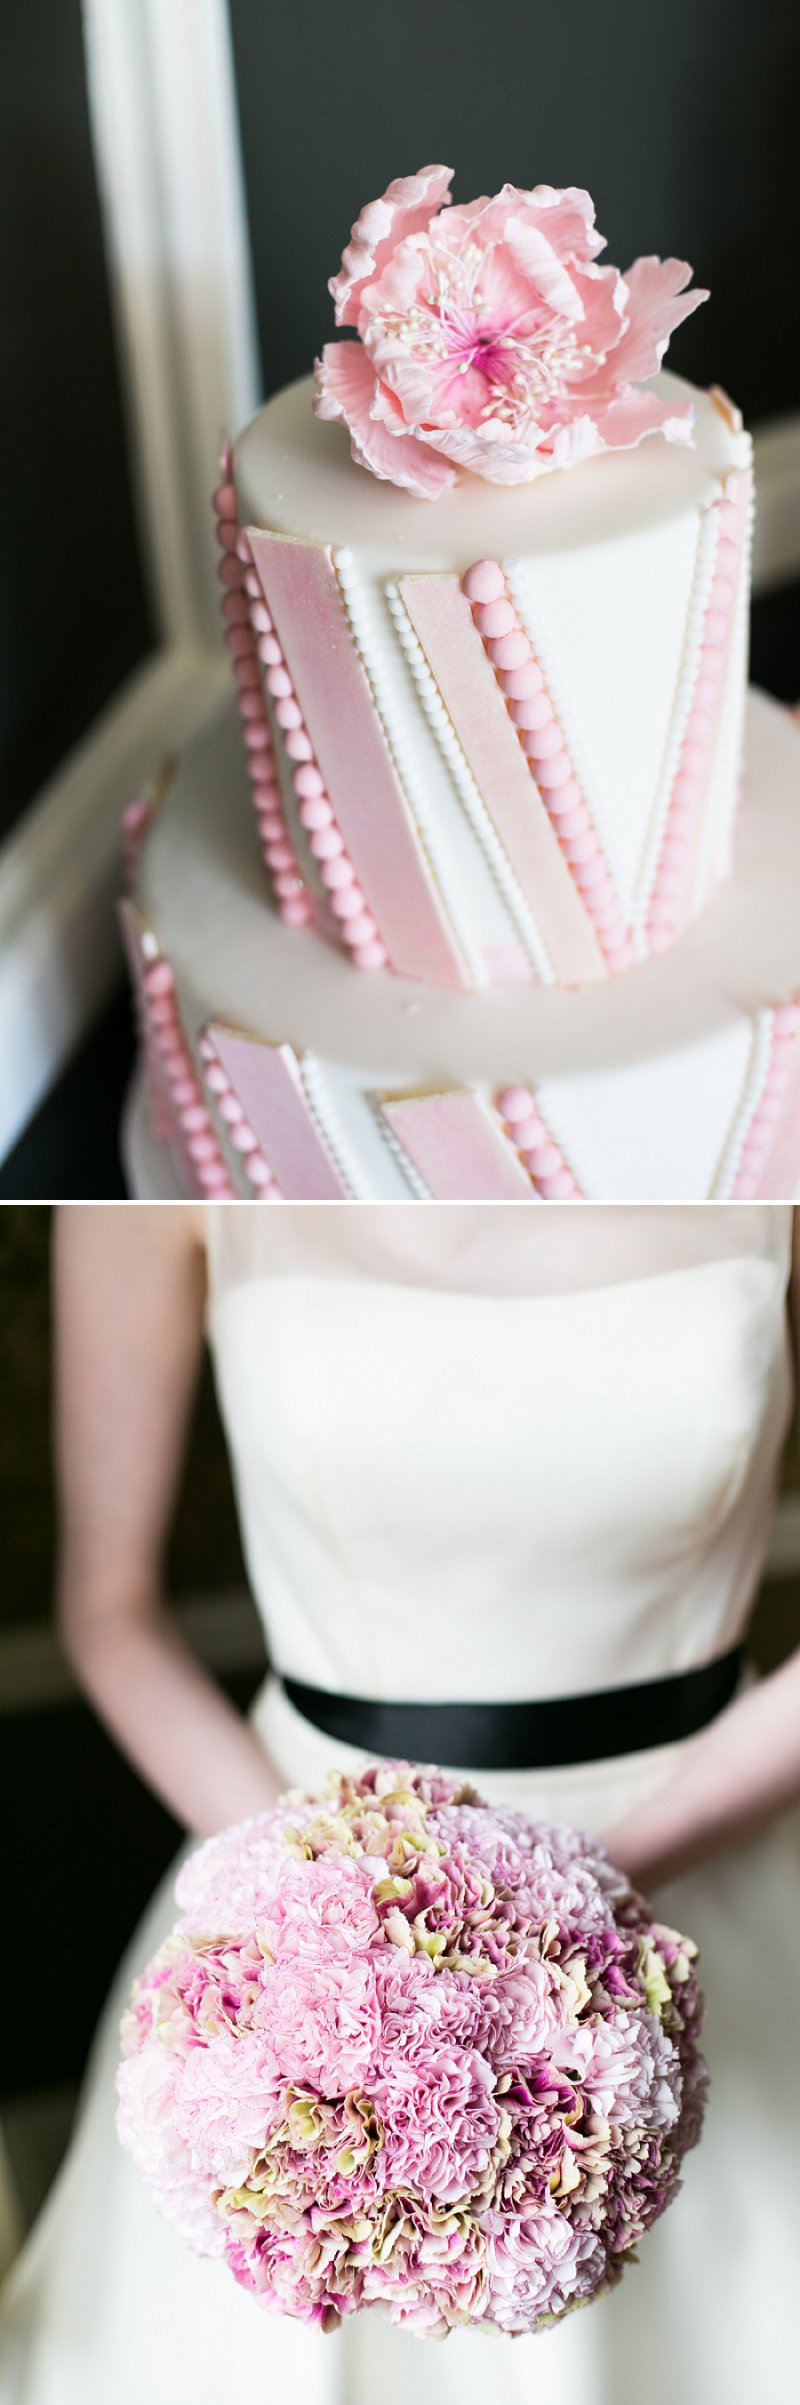 Fun Girly Bridal Inspiration Shoot At Nonsuch Mansion Inspired By Holly Golightly With Bright Pink Details A Vintage Wedding Car With Images by Anneli Marinovich Photography 9